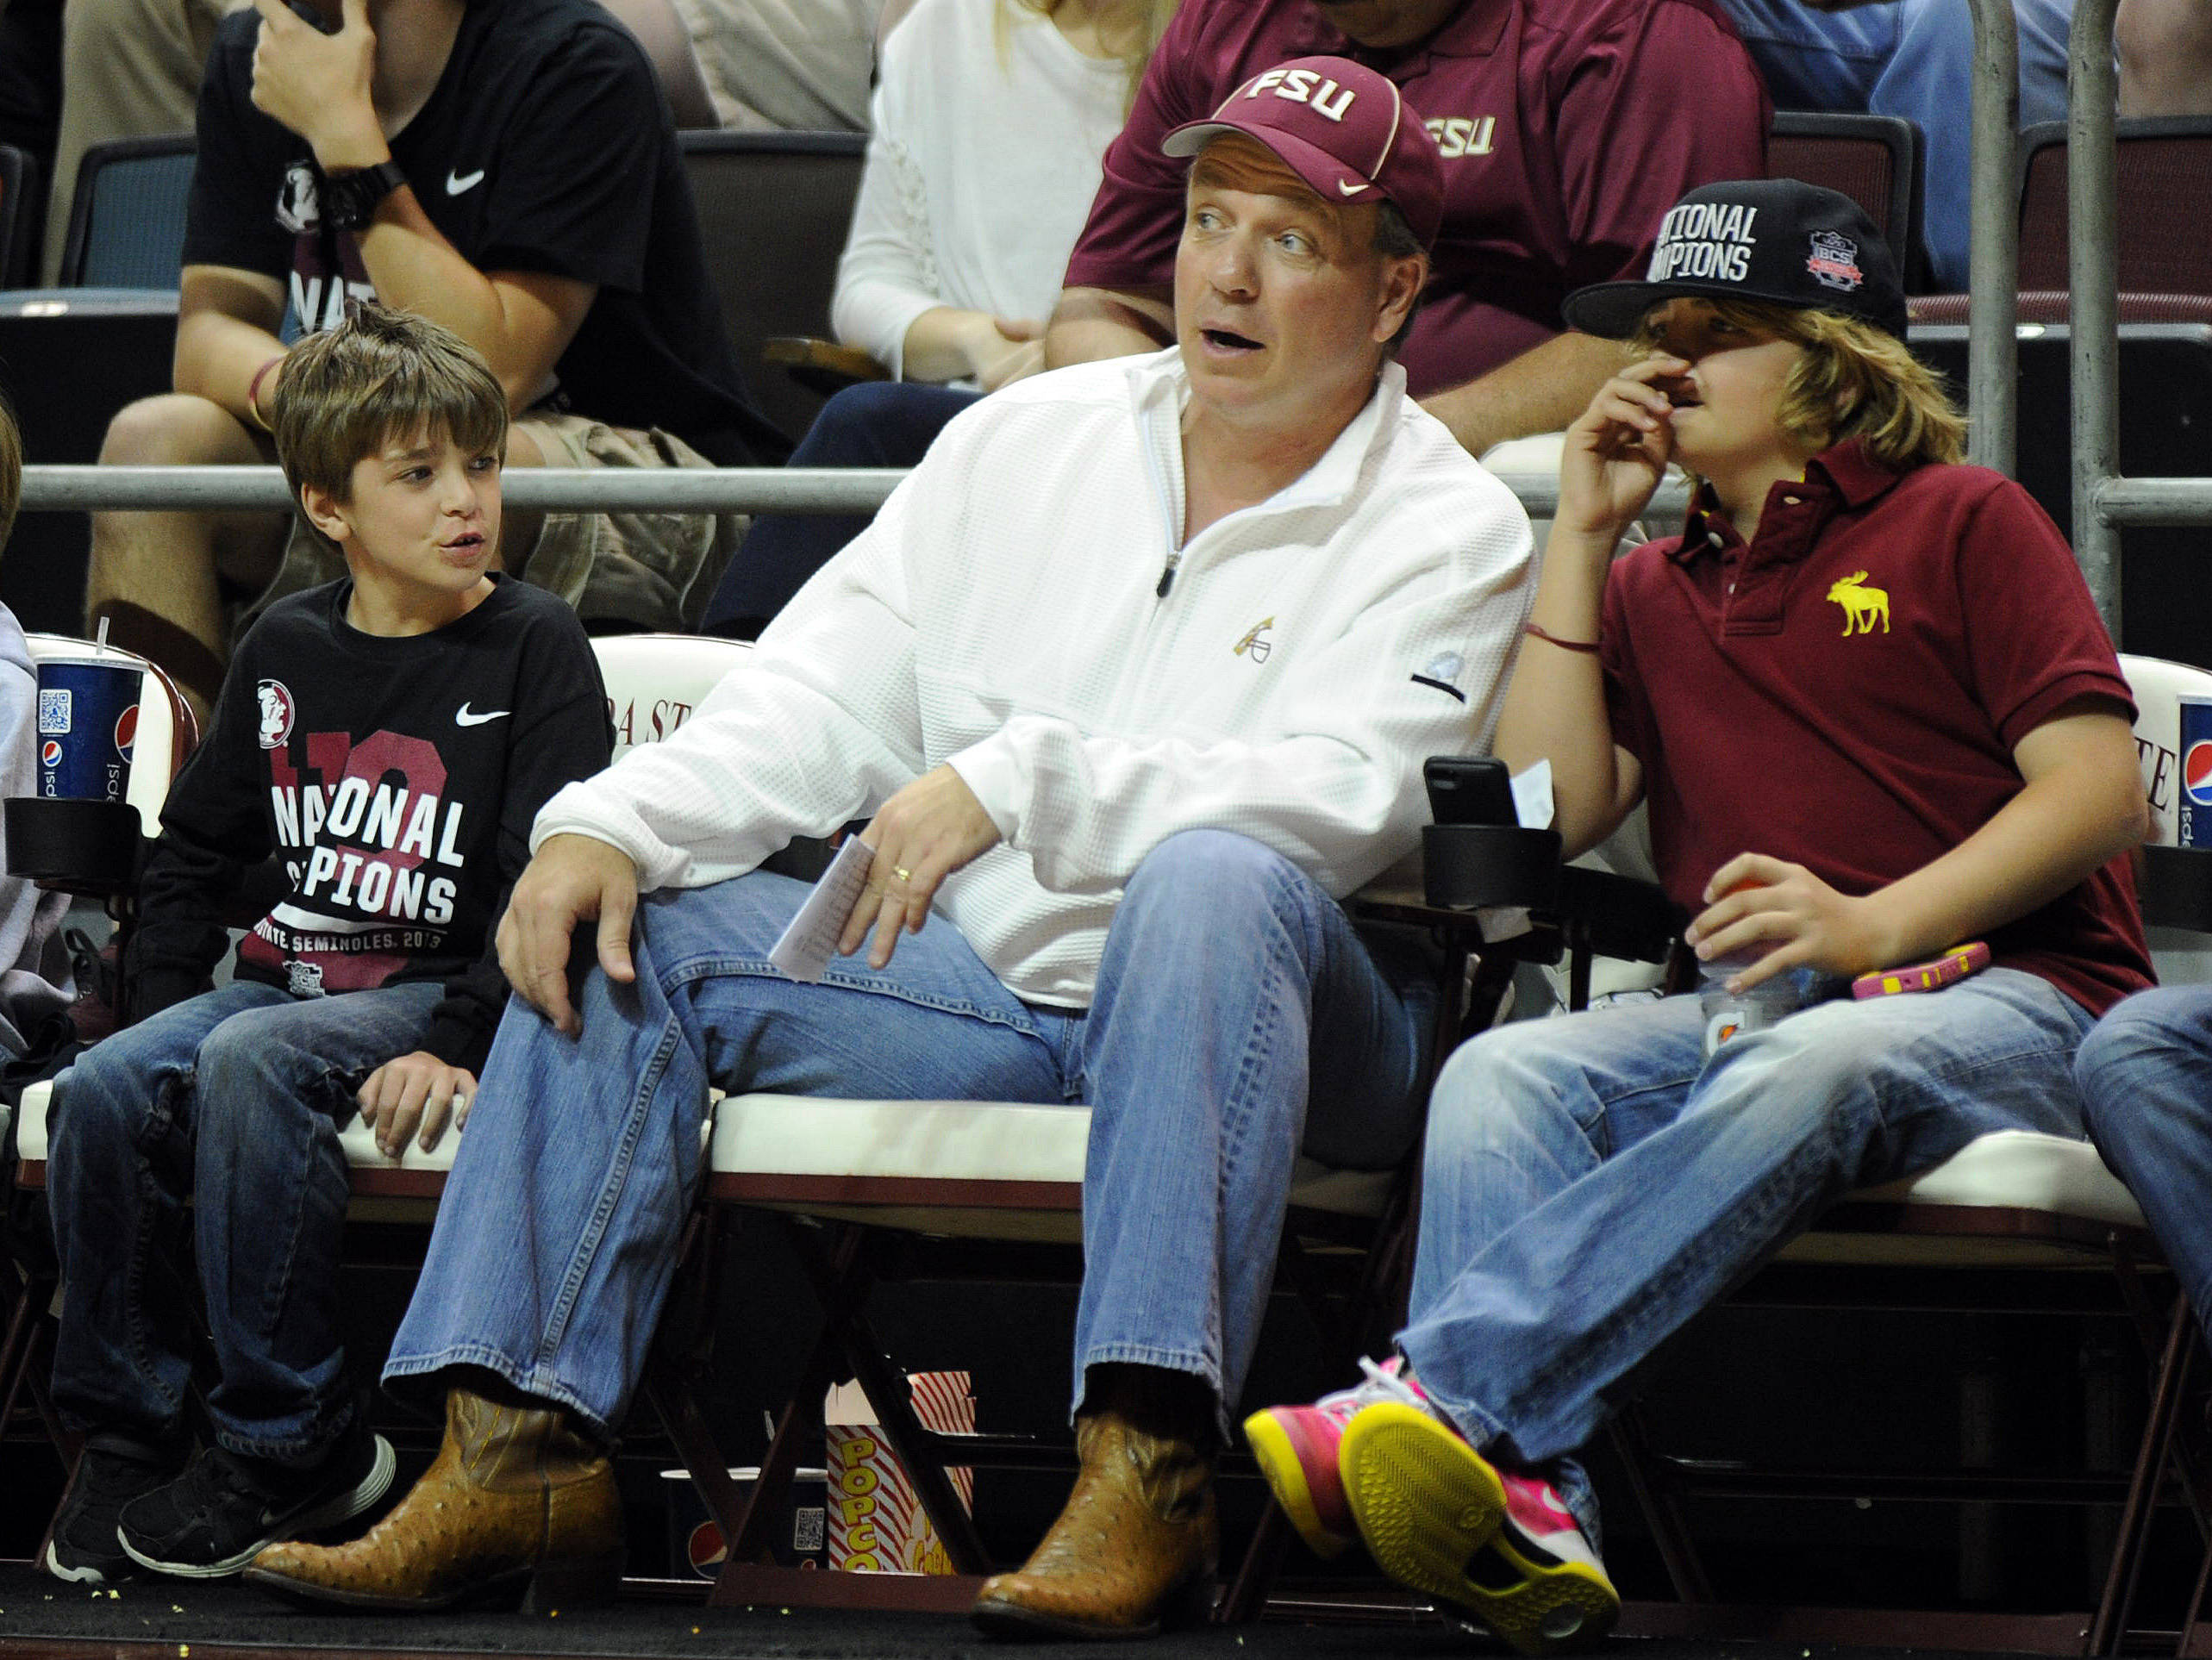 Florida State Seminoles head football coach Jimbo Fisher, sons Ethan and Trey watch the Florida State game. (Melina Vastola-USA TODAY Sports)